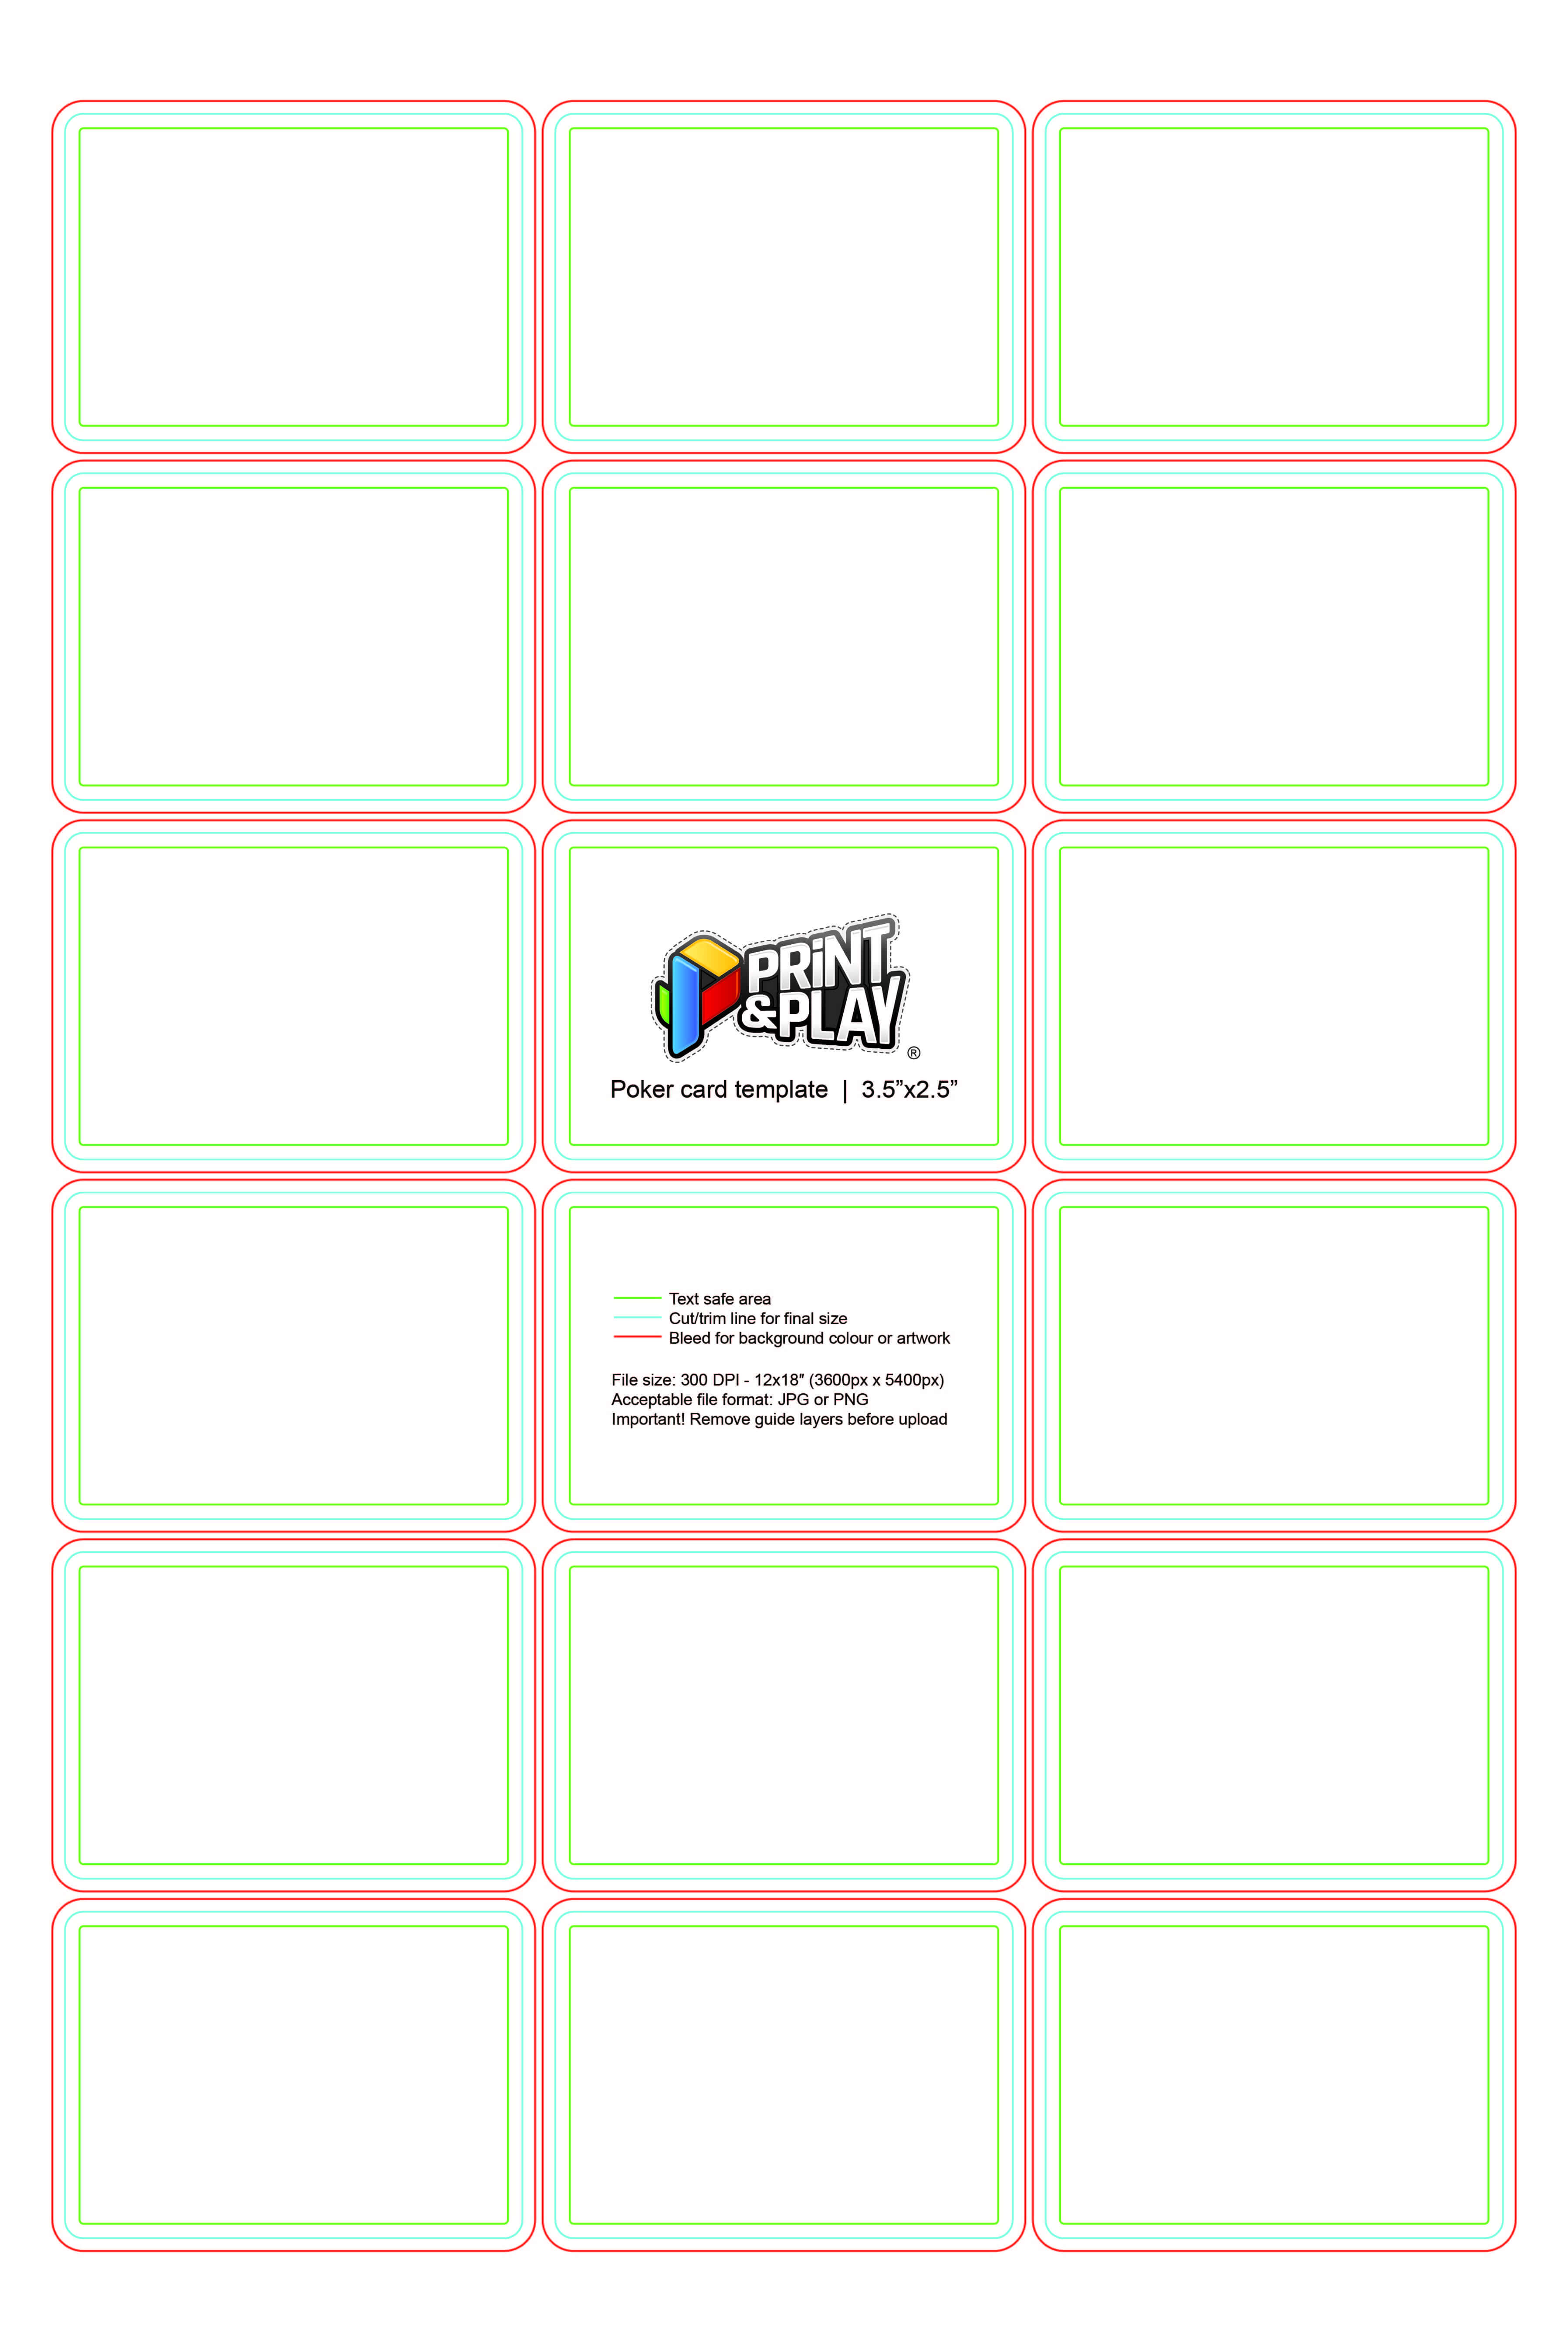 Playing Cards : Formatting & Templates - Print & Play regarding Template For Playing Cards Printable